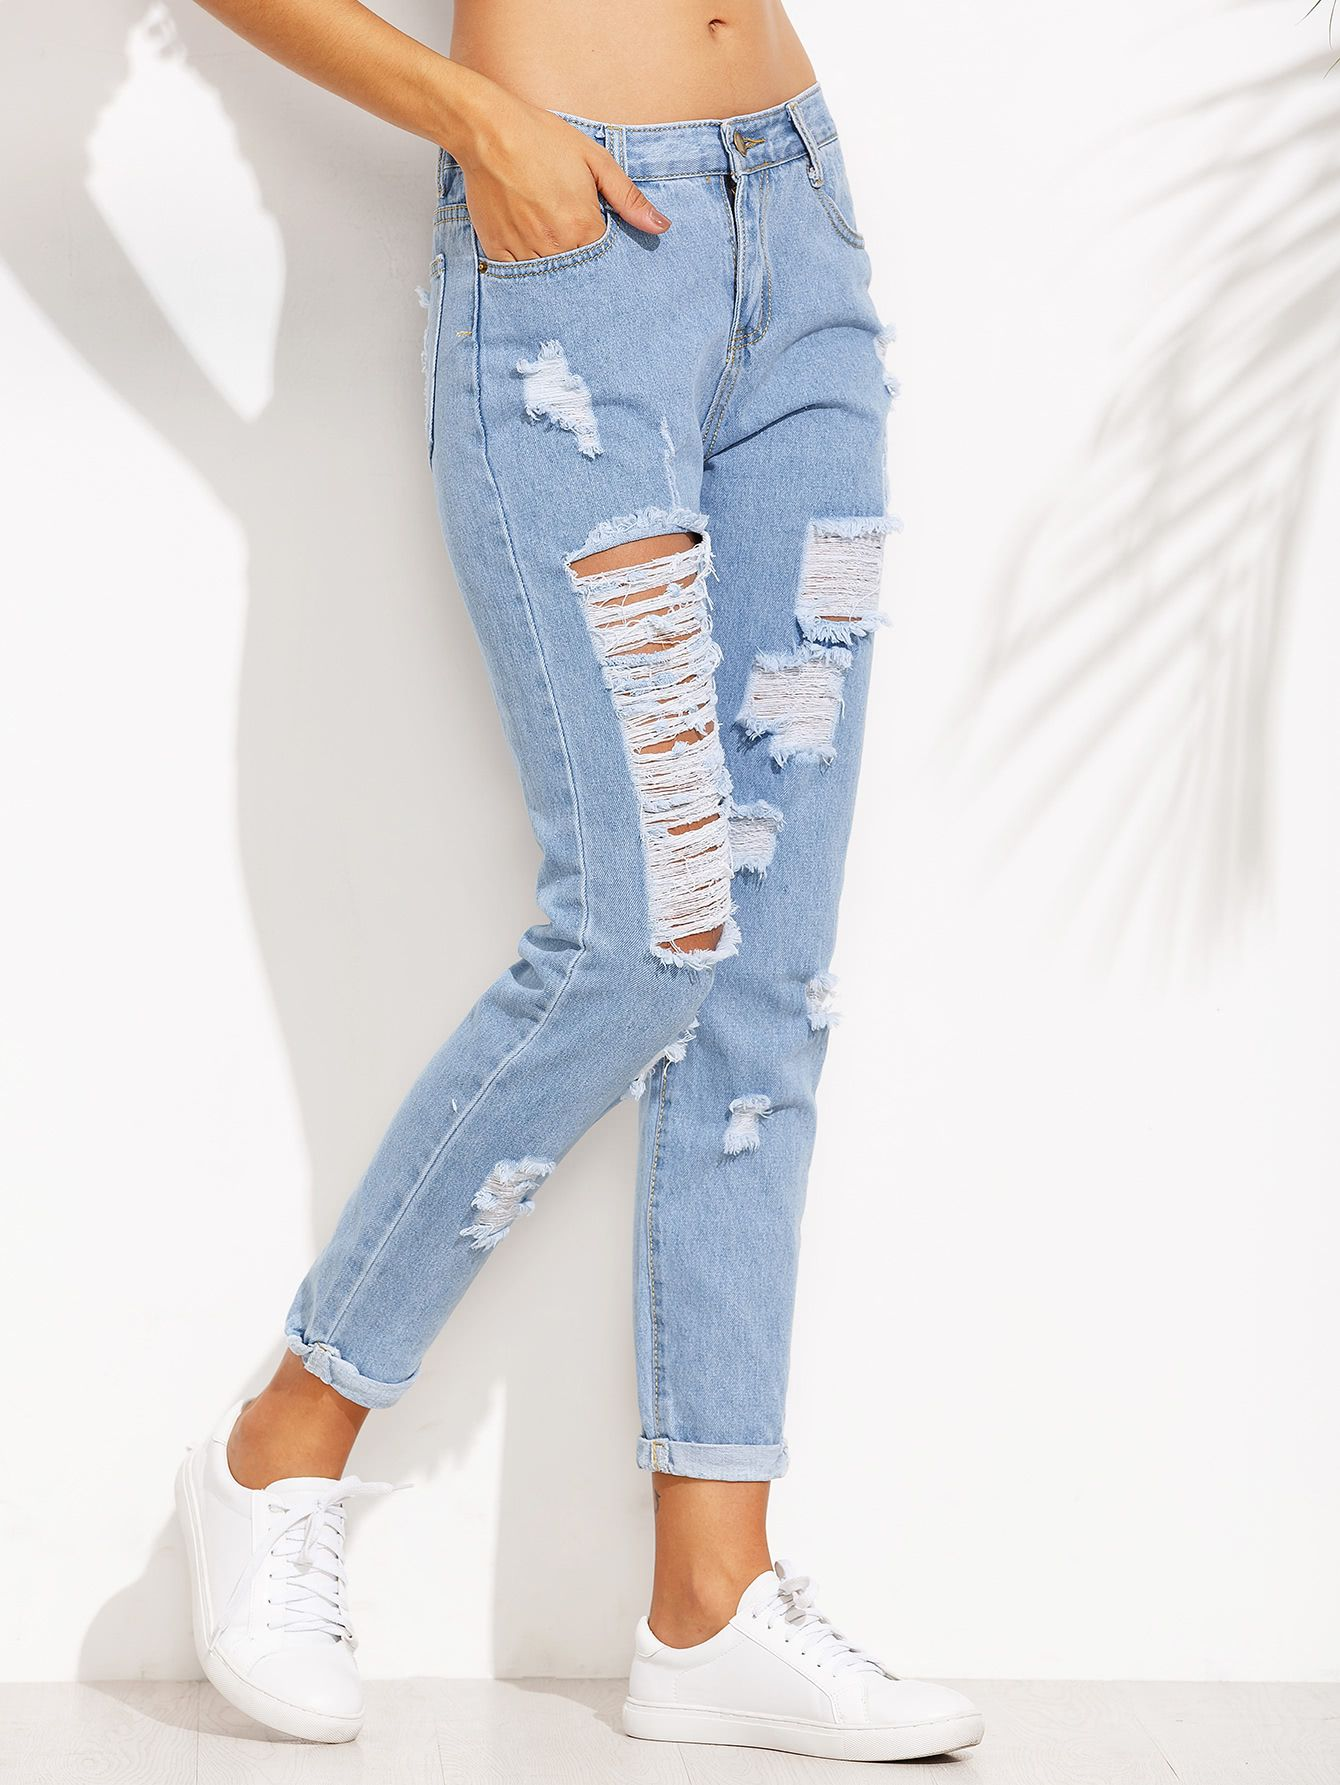 821d3fda4d Shop Extreme Distressed Roll Hem Jeans online. SheIn offers Extreme  Distressed Roll Hem Jeans & more to fit your fashionable needs.